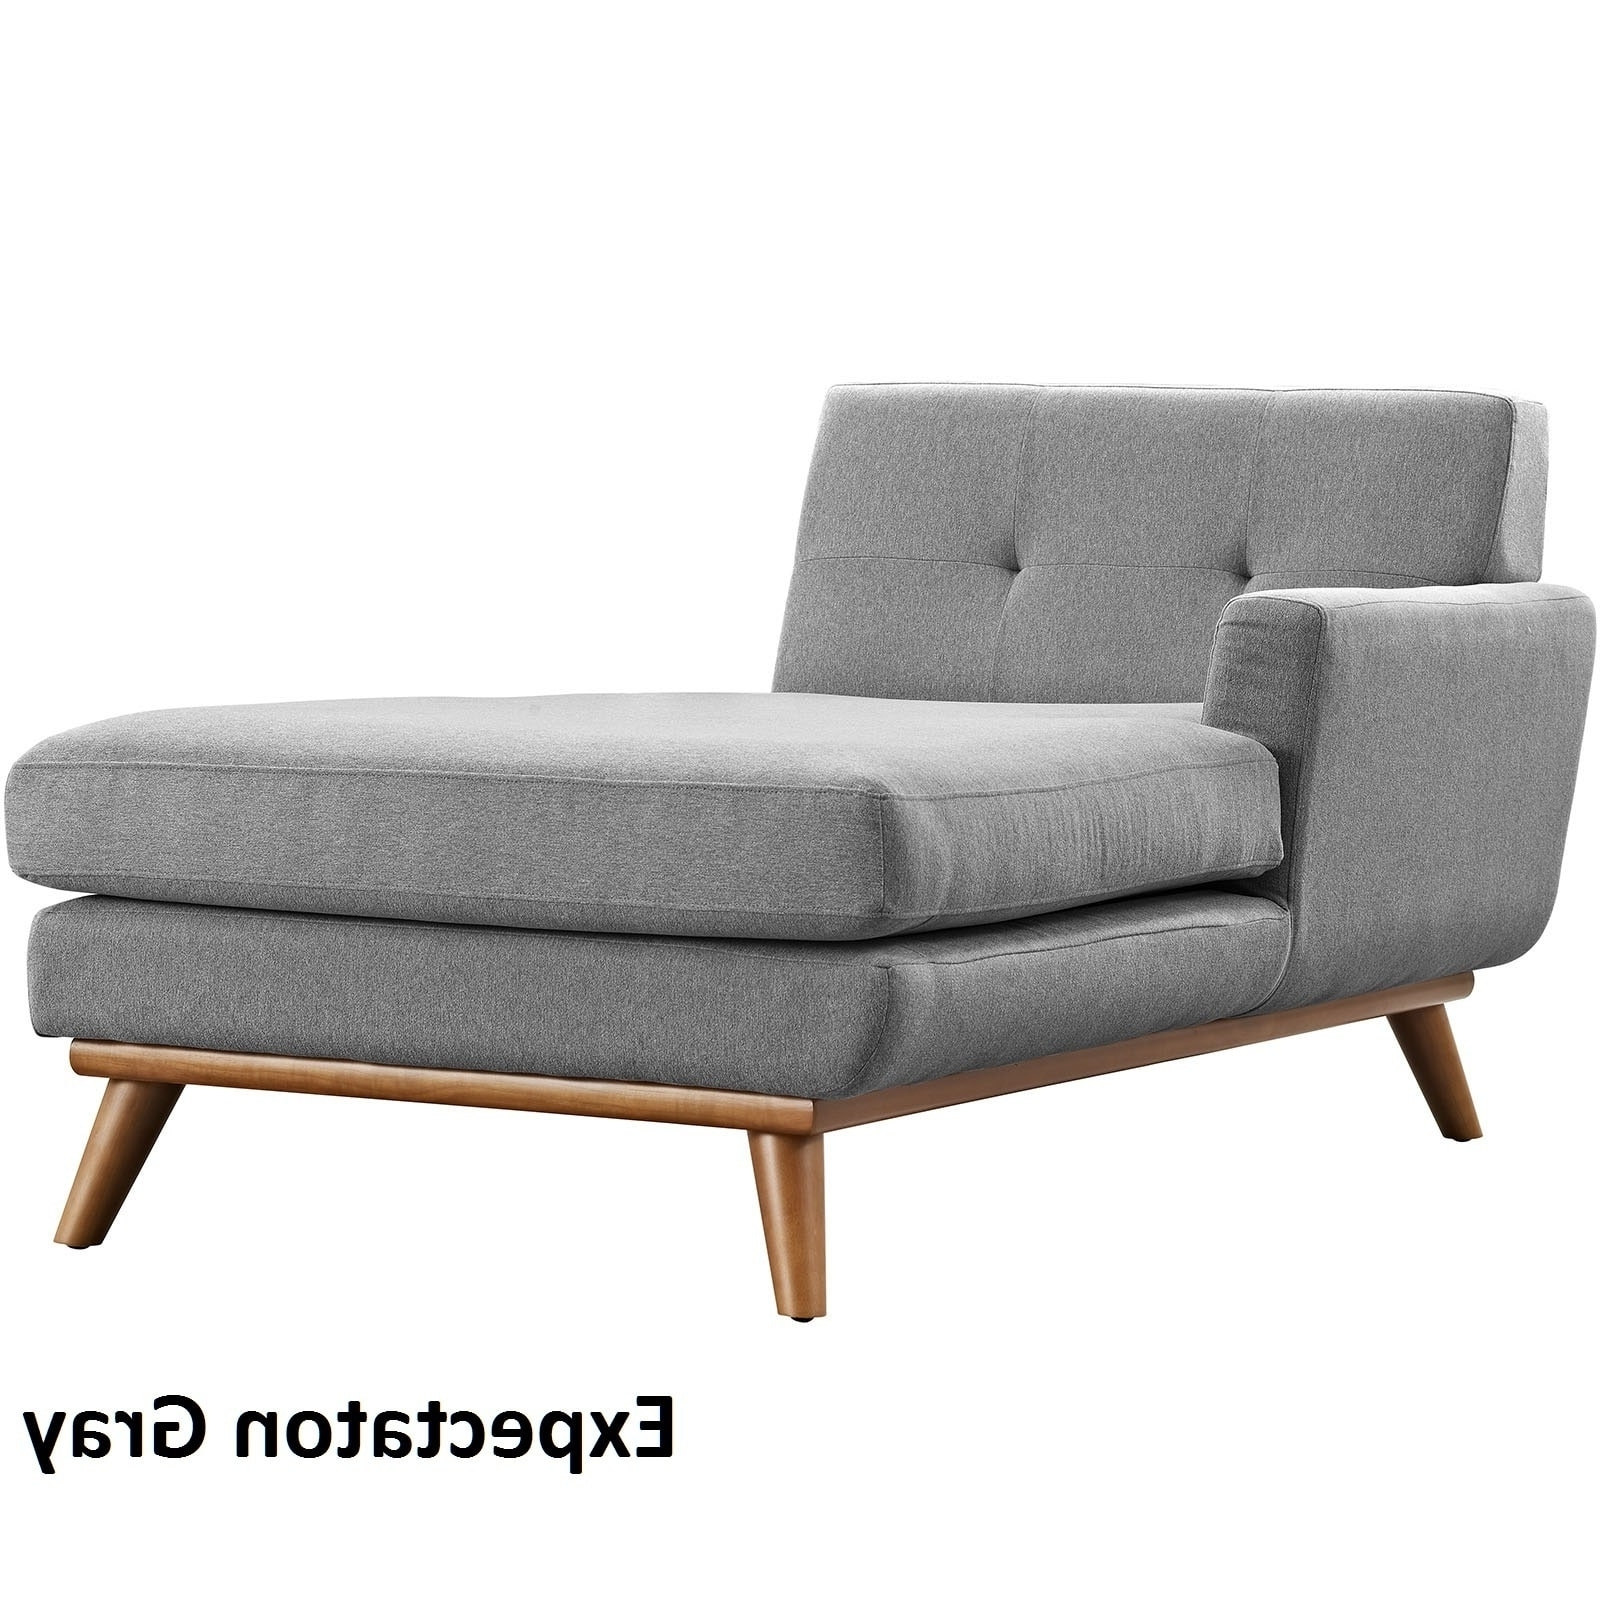 Well Known Left Arm Chaise Lounges Regarding Engage Left Arm Mid Century Chaise Lounge – Free Shipping Today (View 13 of 15)